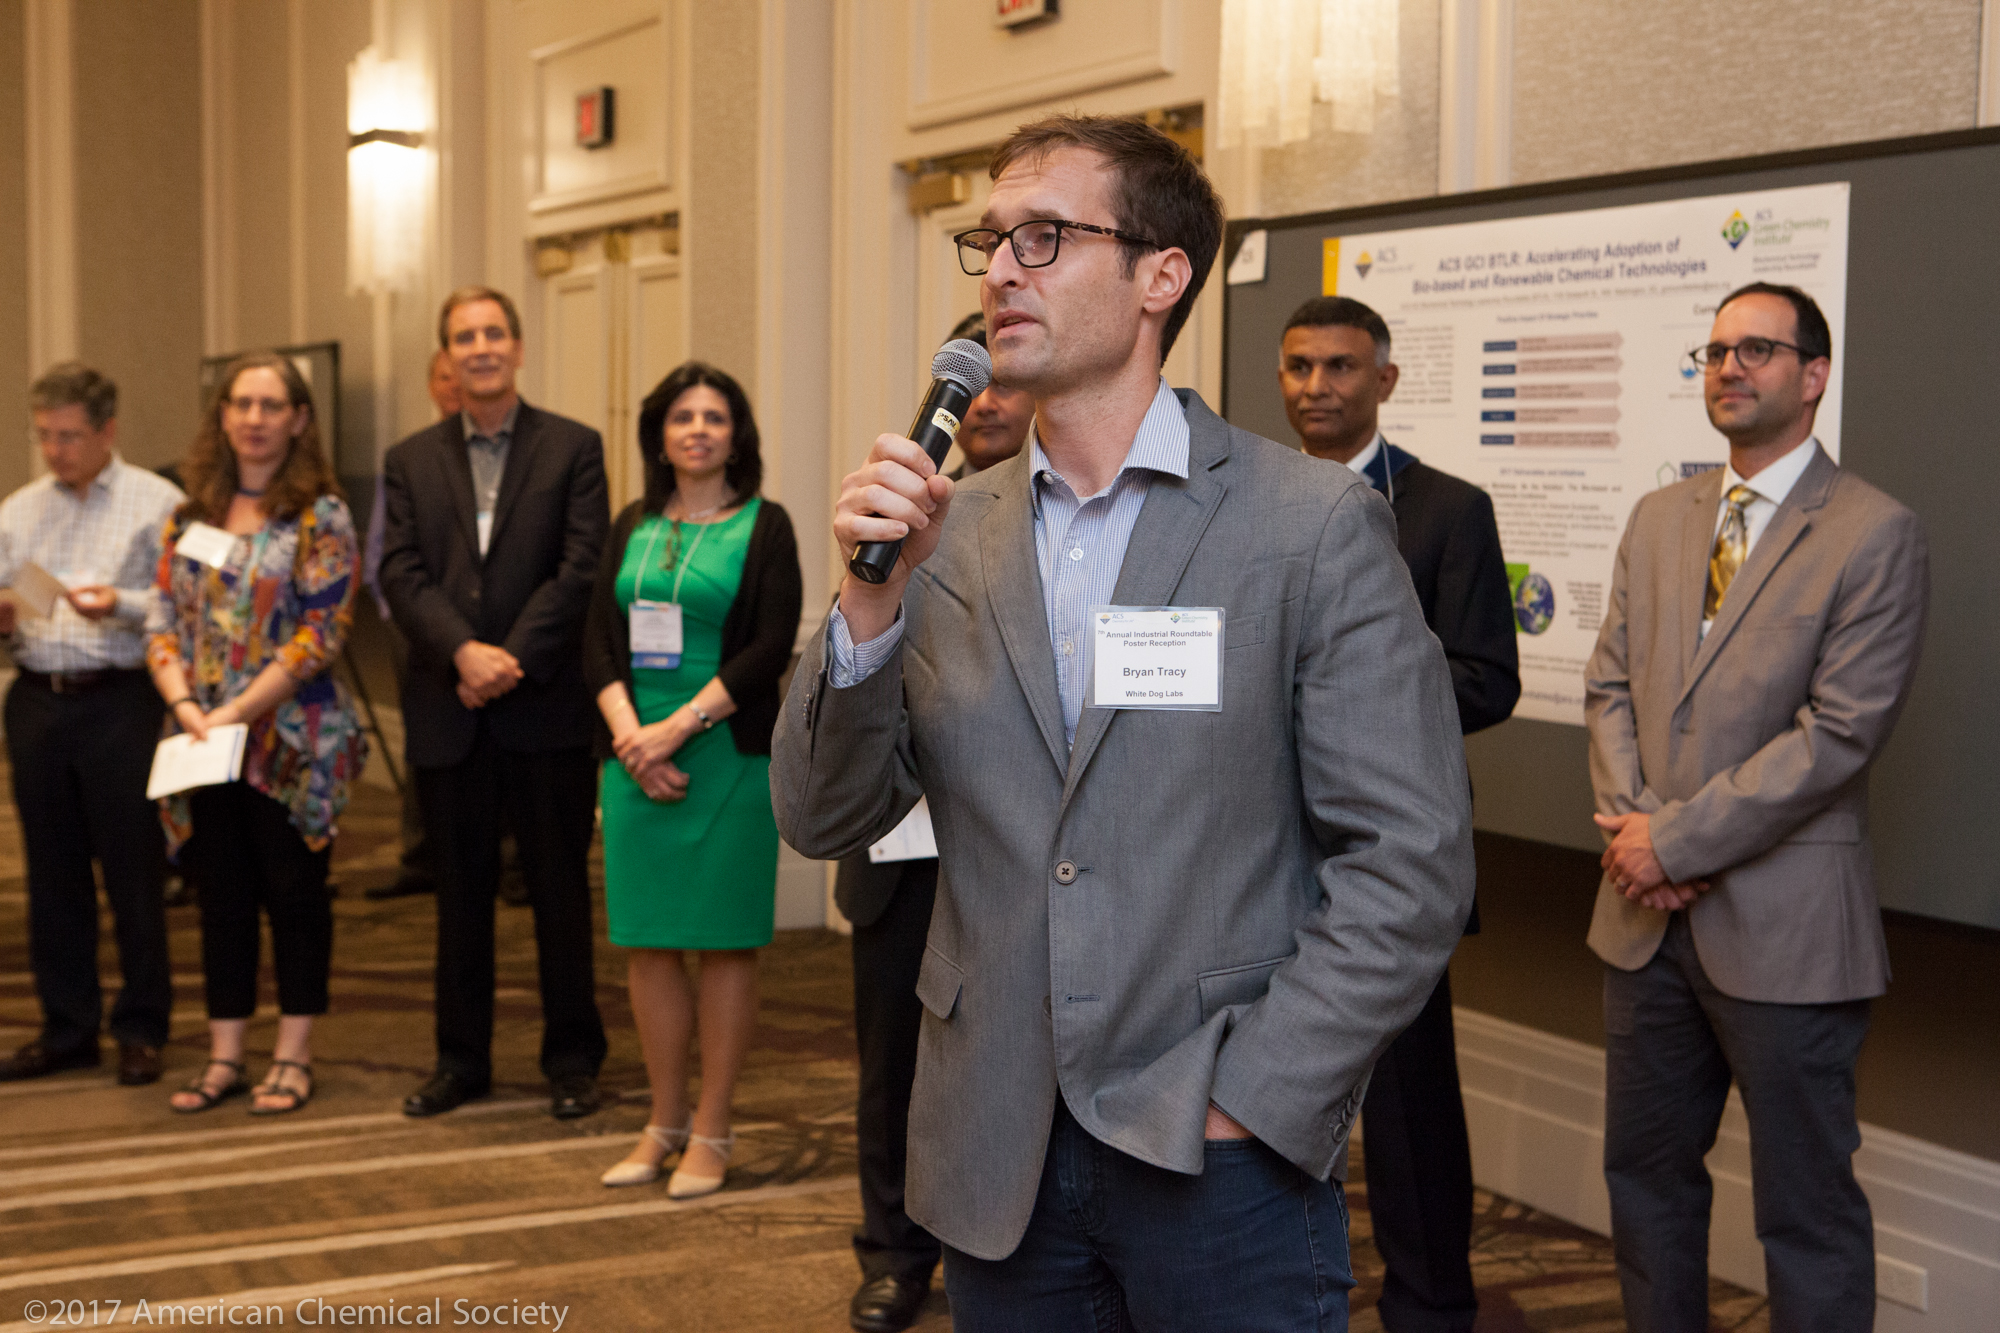 7th Annual ACS GCI Industrial Roundtable Poster Reception